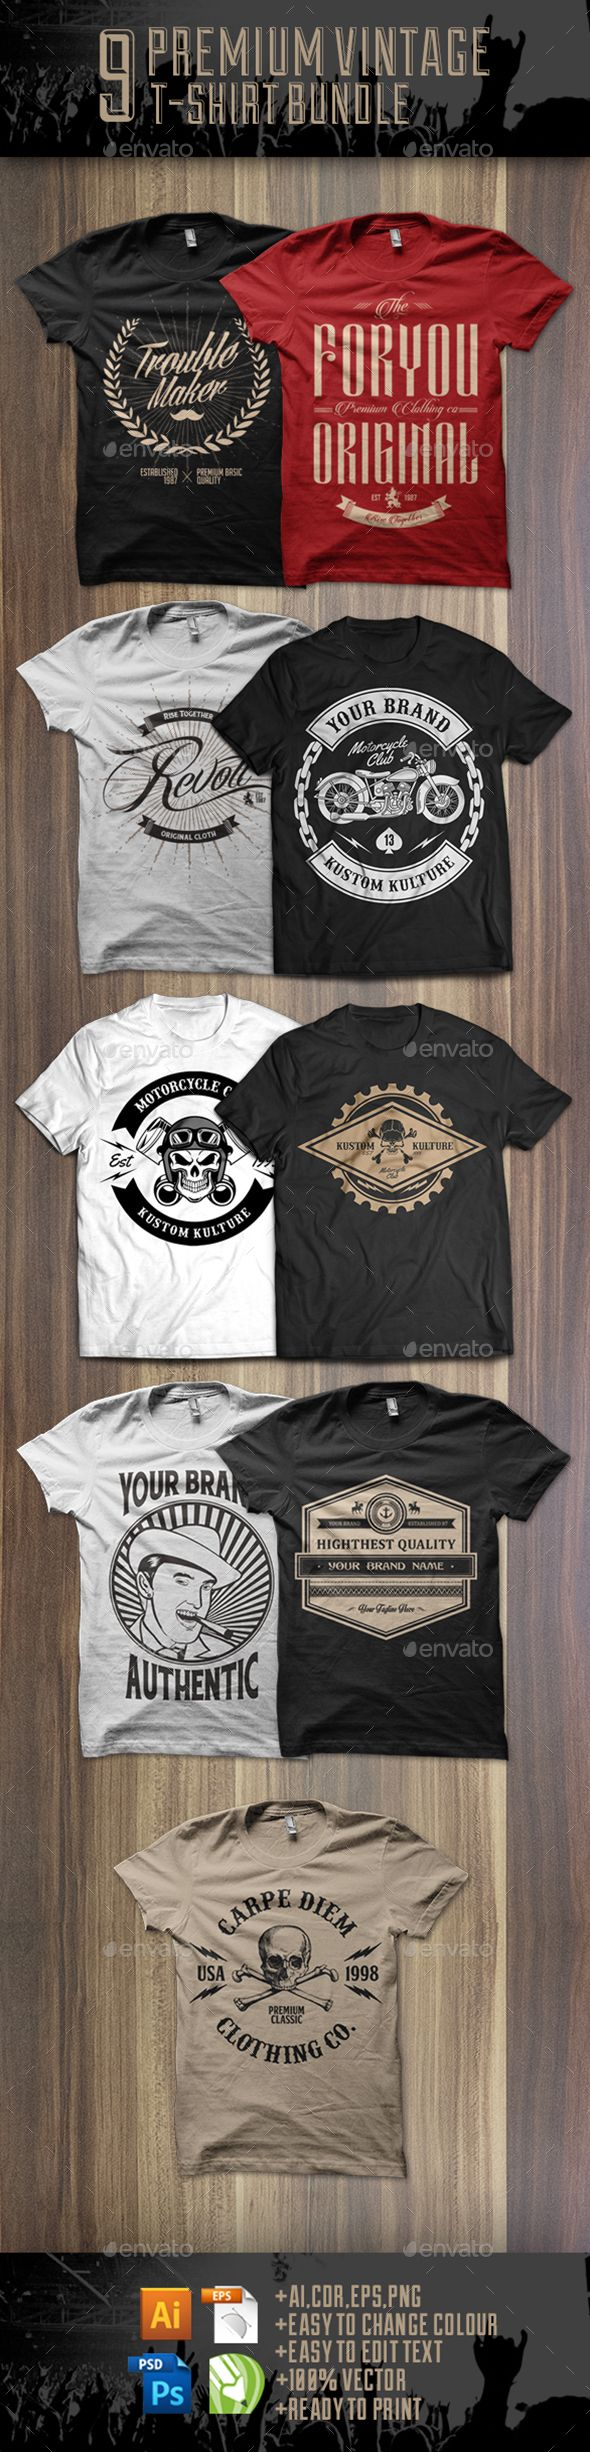 Design t shirt transfer template - 9 Premium T Shirt Design Bundle Templates Vector Eps Photoshop Psd Transparent Png